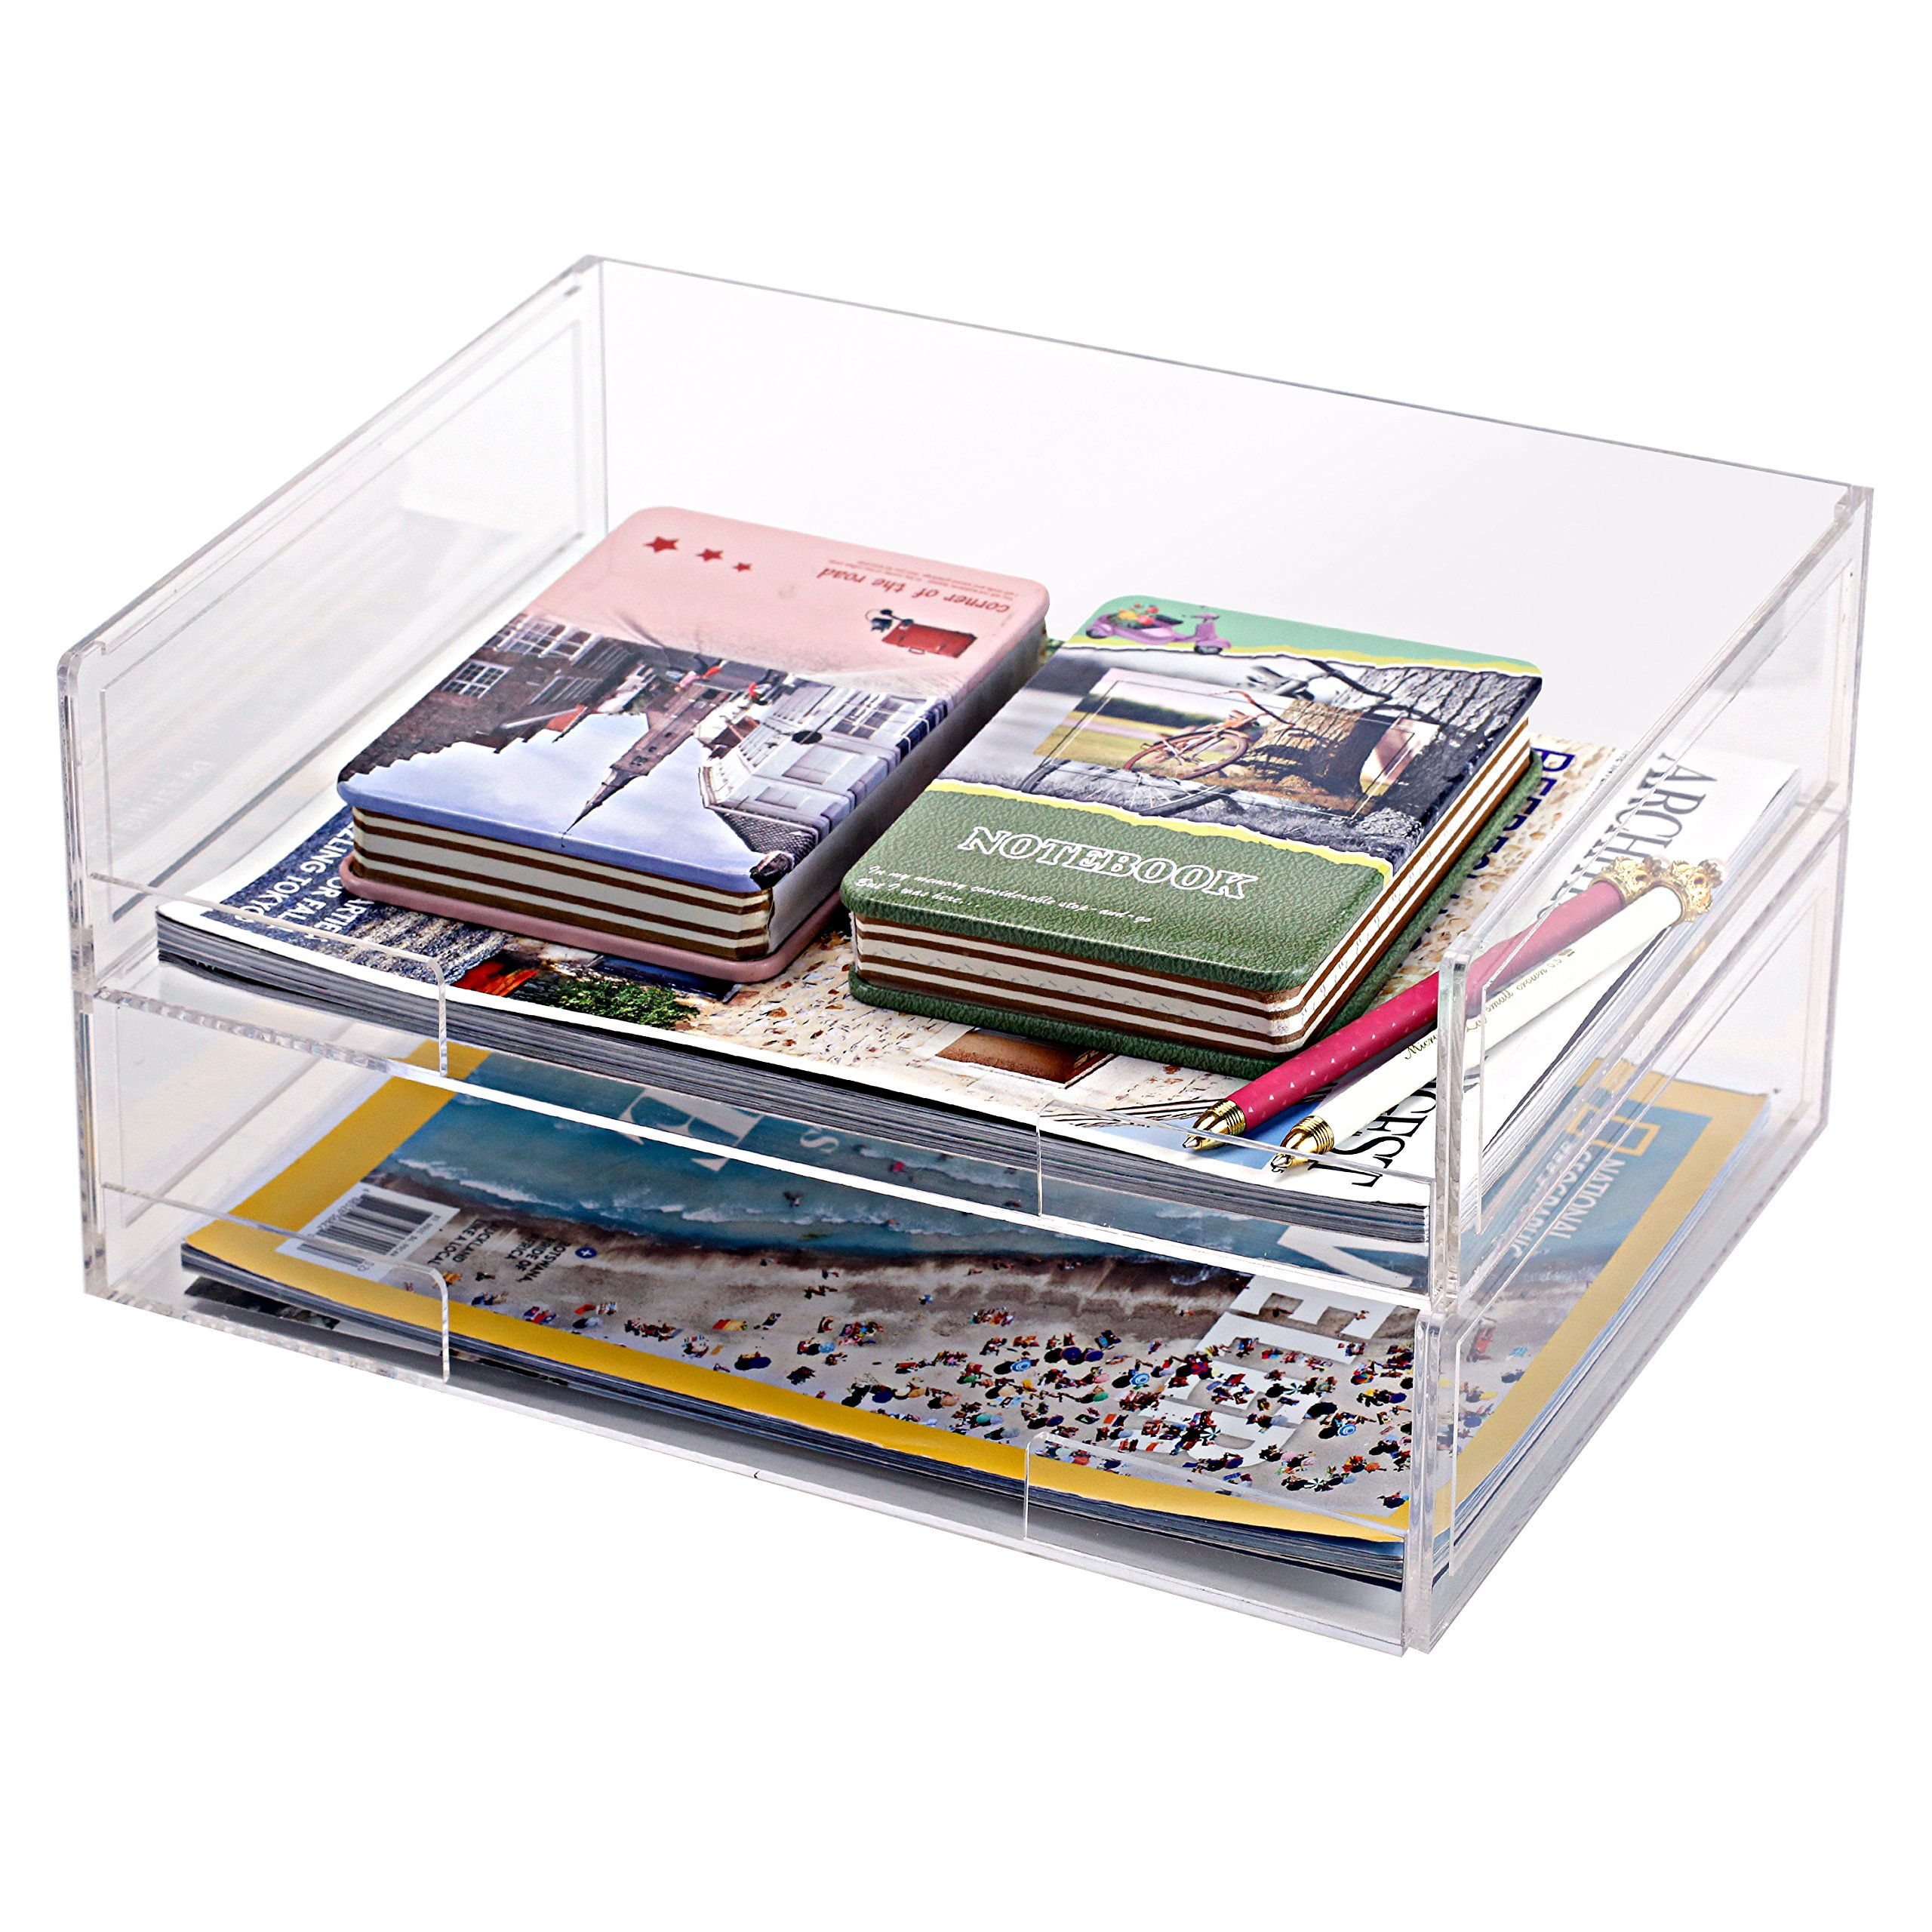 Deluxe Stacking Clear Acrylic Document Paper Trays, Desktop Organizer Racks, Set of 2 by MyGift